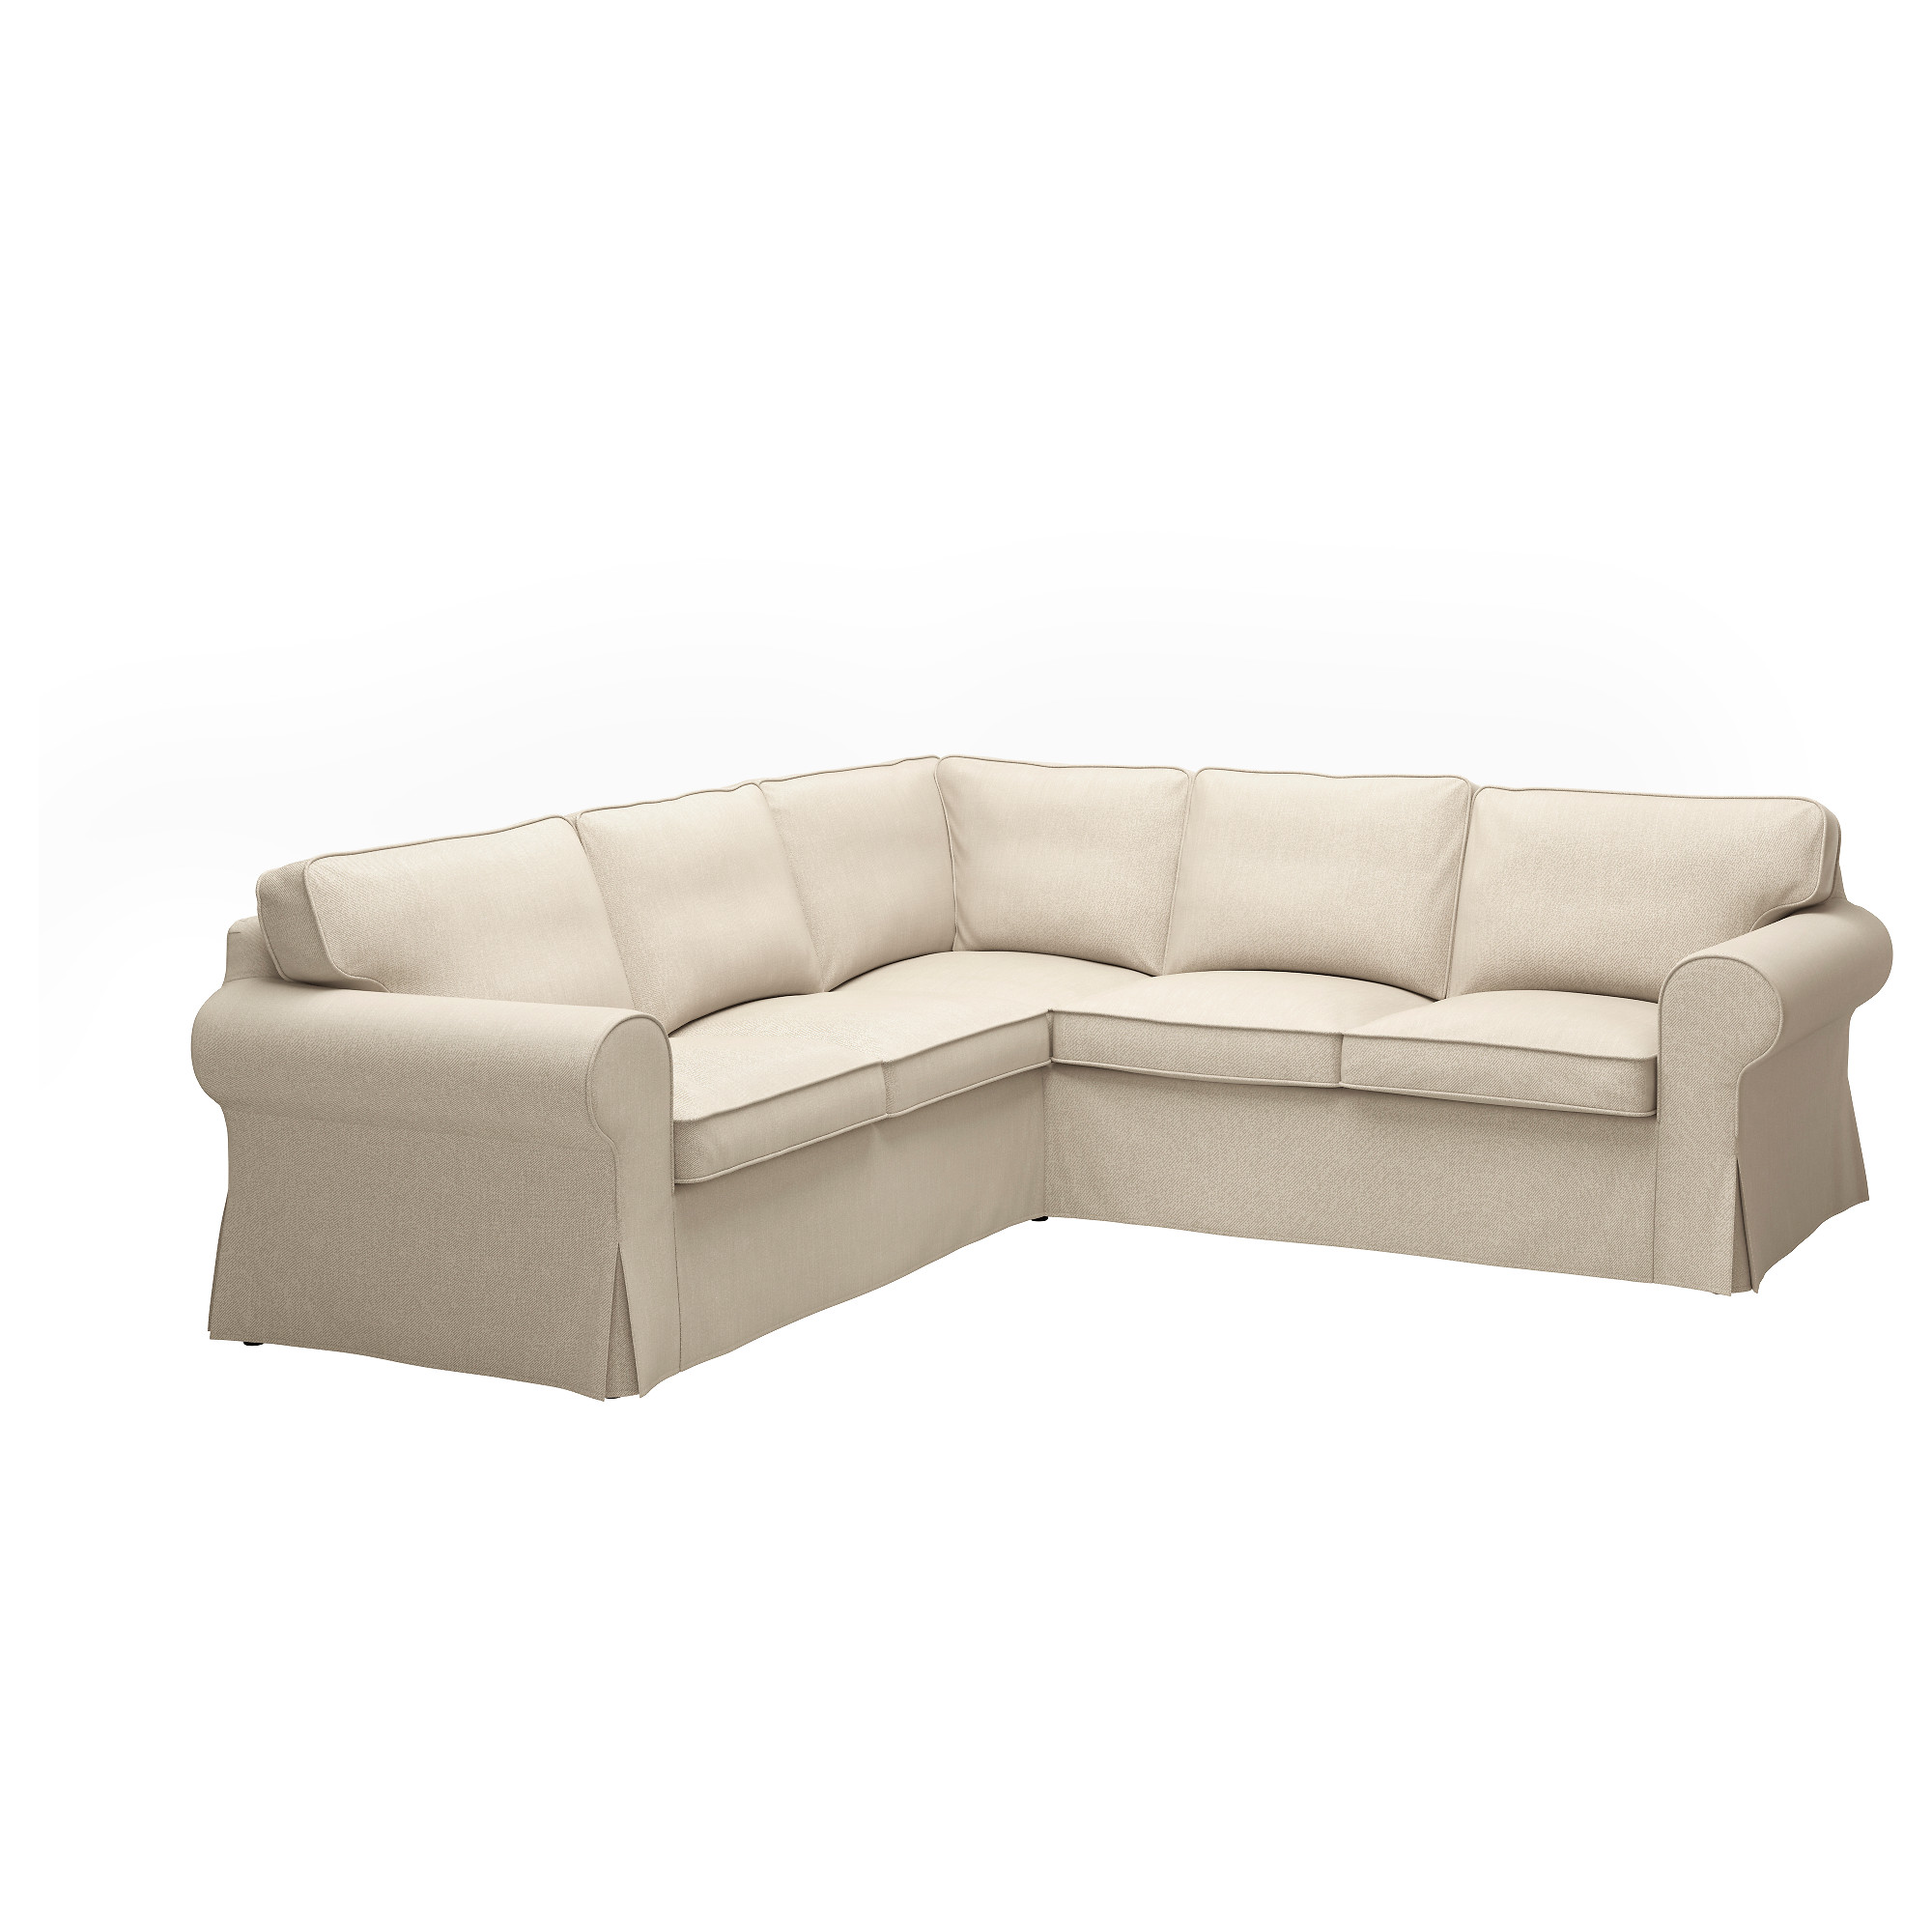 sc 1 st  Ikea : ikea ektorp chaise - Sectionals, Sofas & Couches